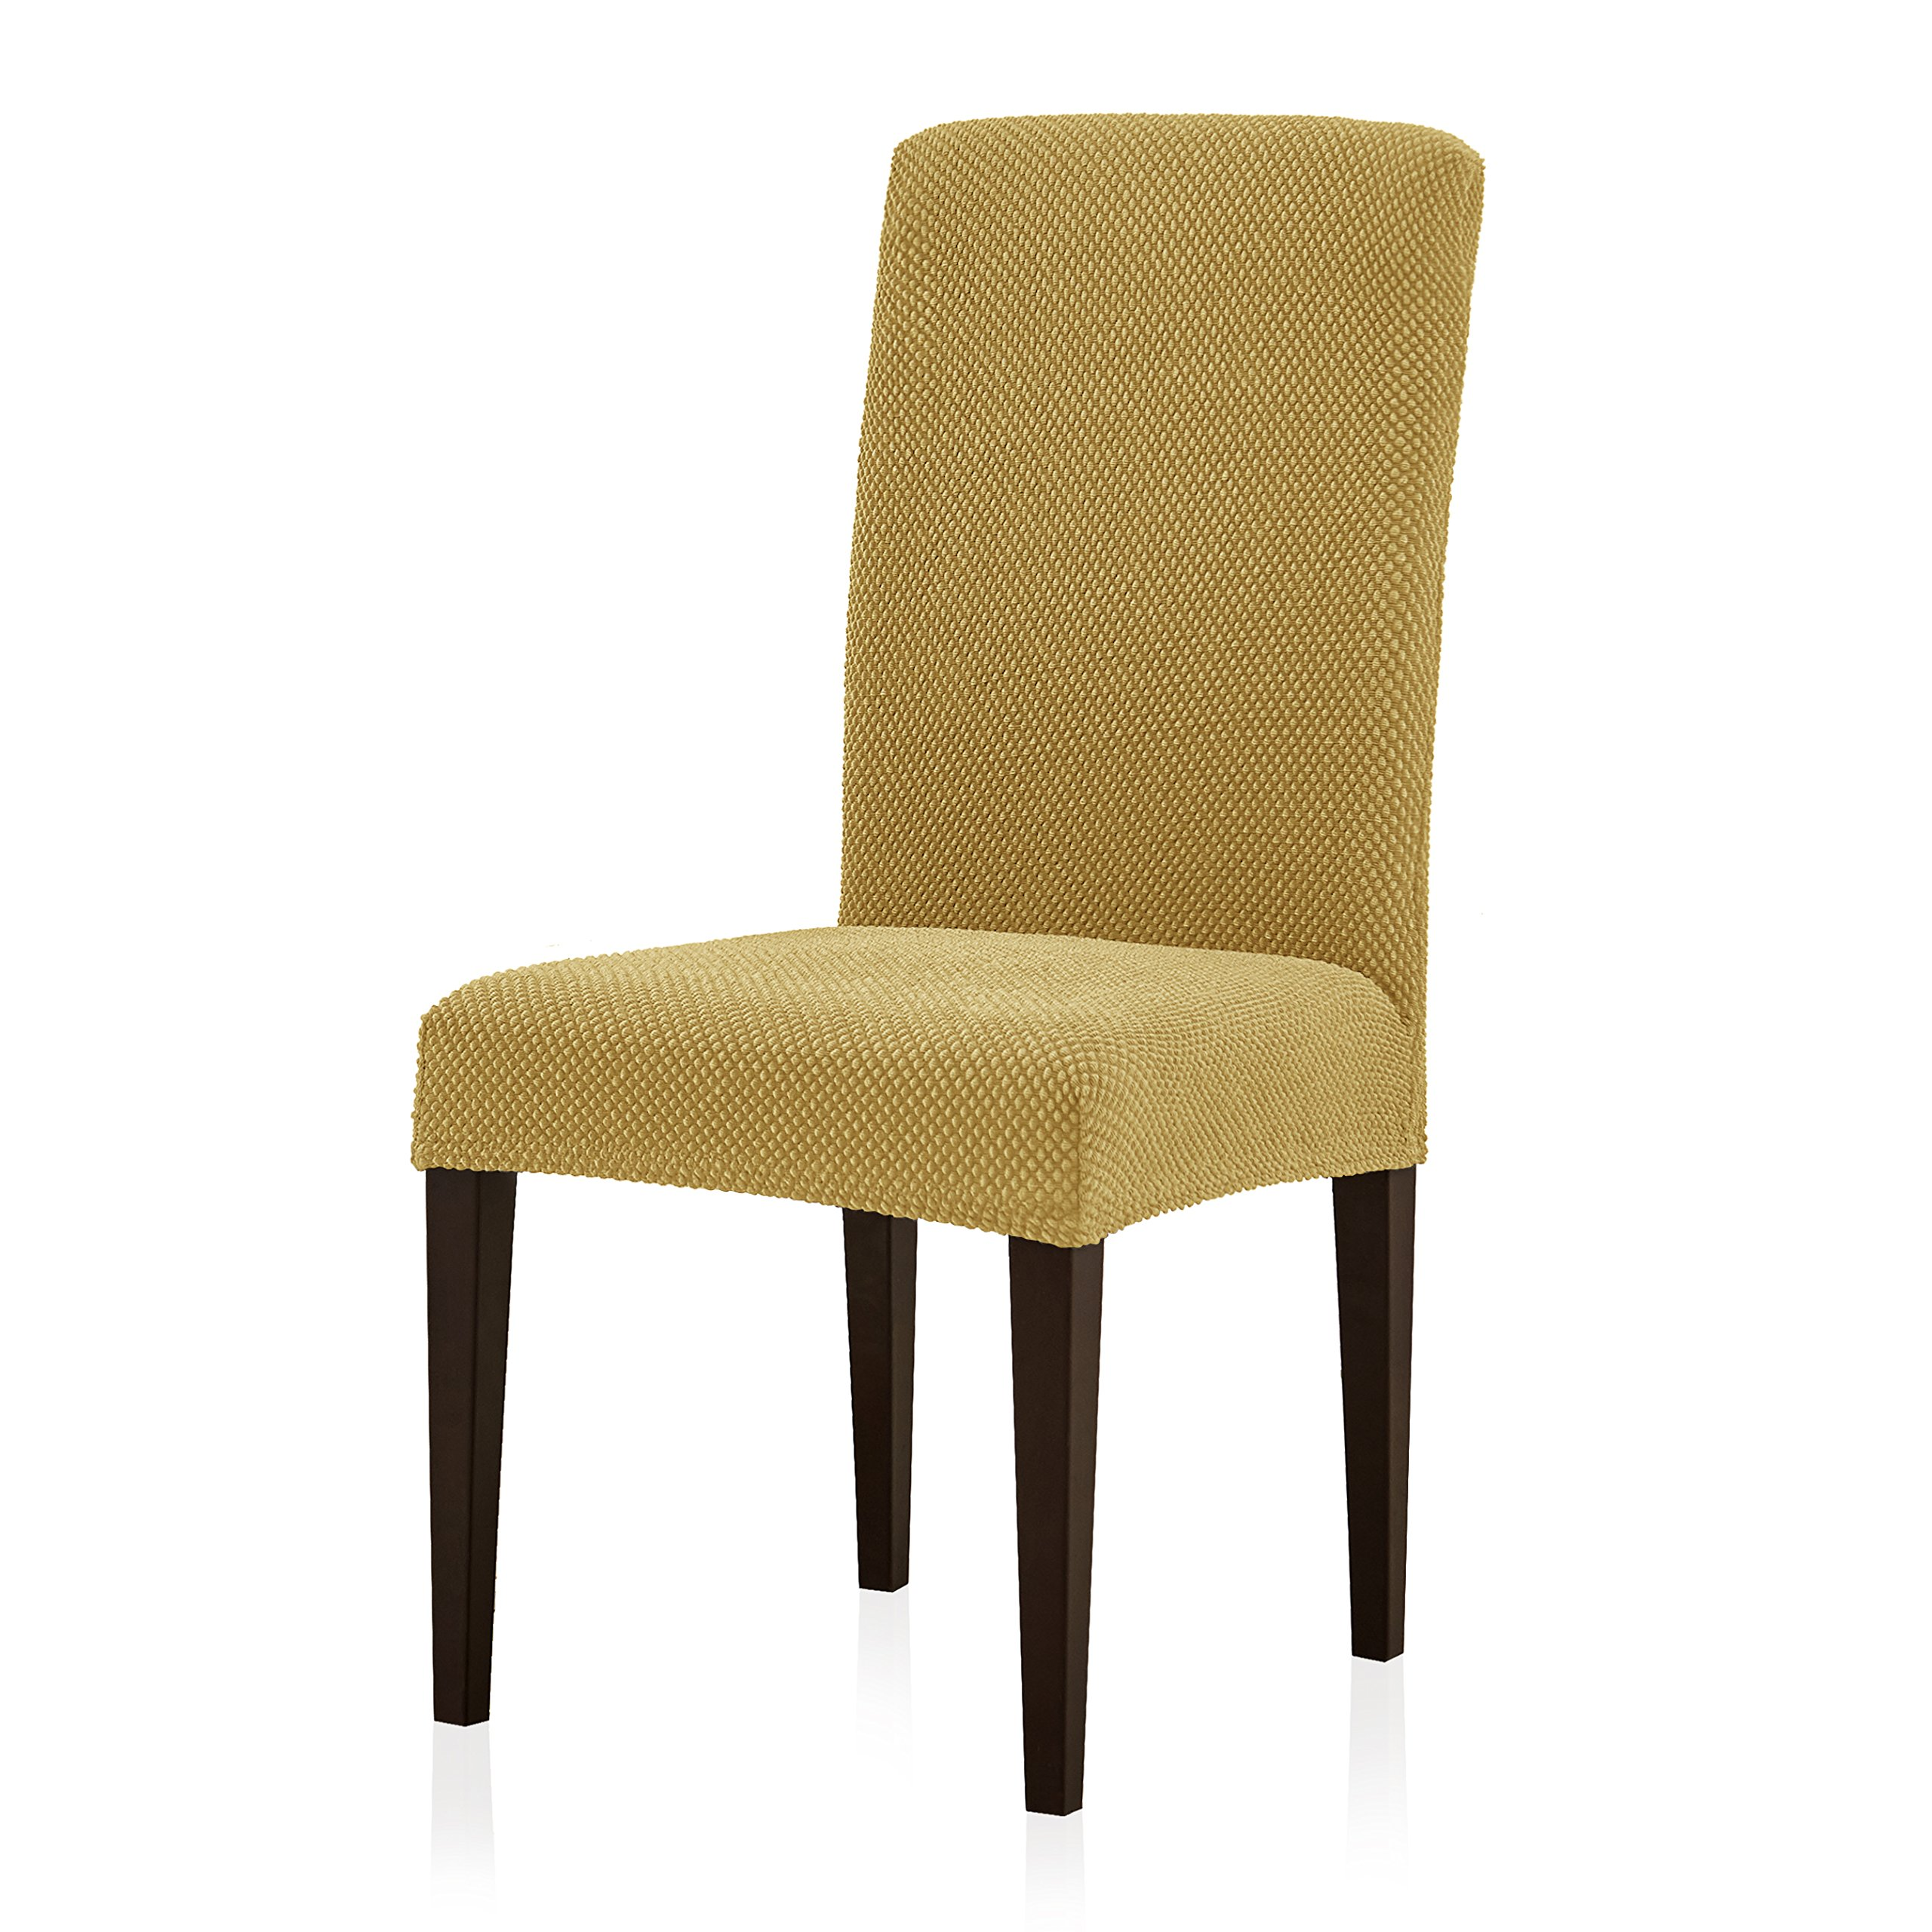 Subrtex Stretch Dining Room Chair Slipcovers (4, Beige Jacquard)